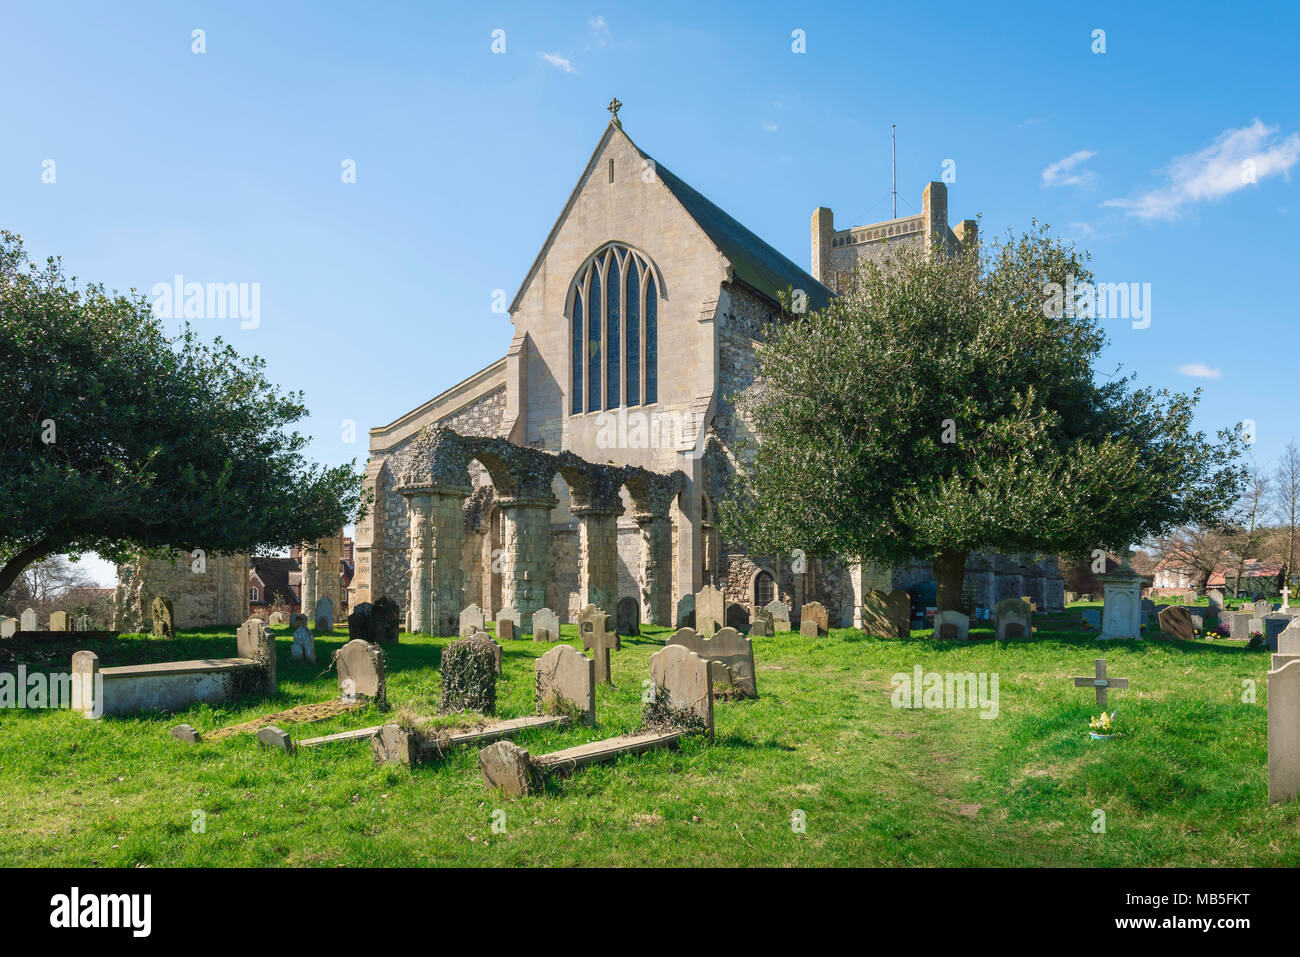 Suffolk church, view of the east end of St Bartholomew's Church in the Suffolk town of Orford, East Anglia, UK. - Stock Image